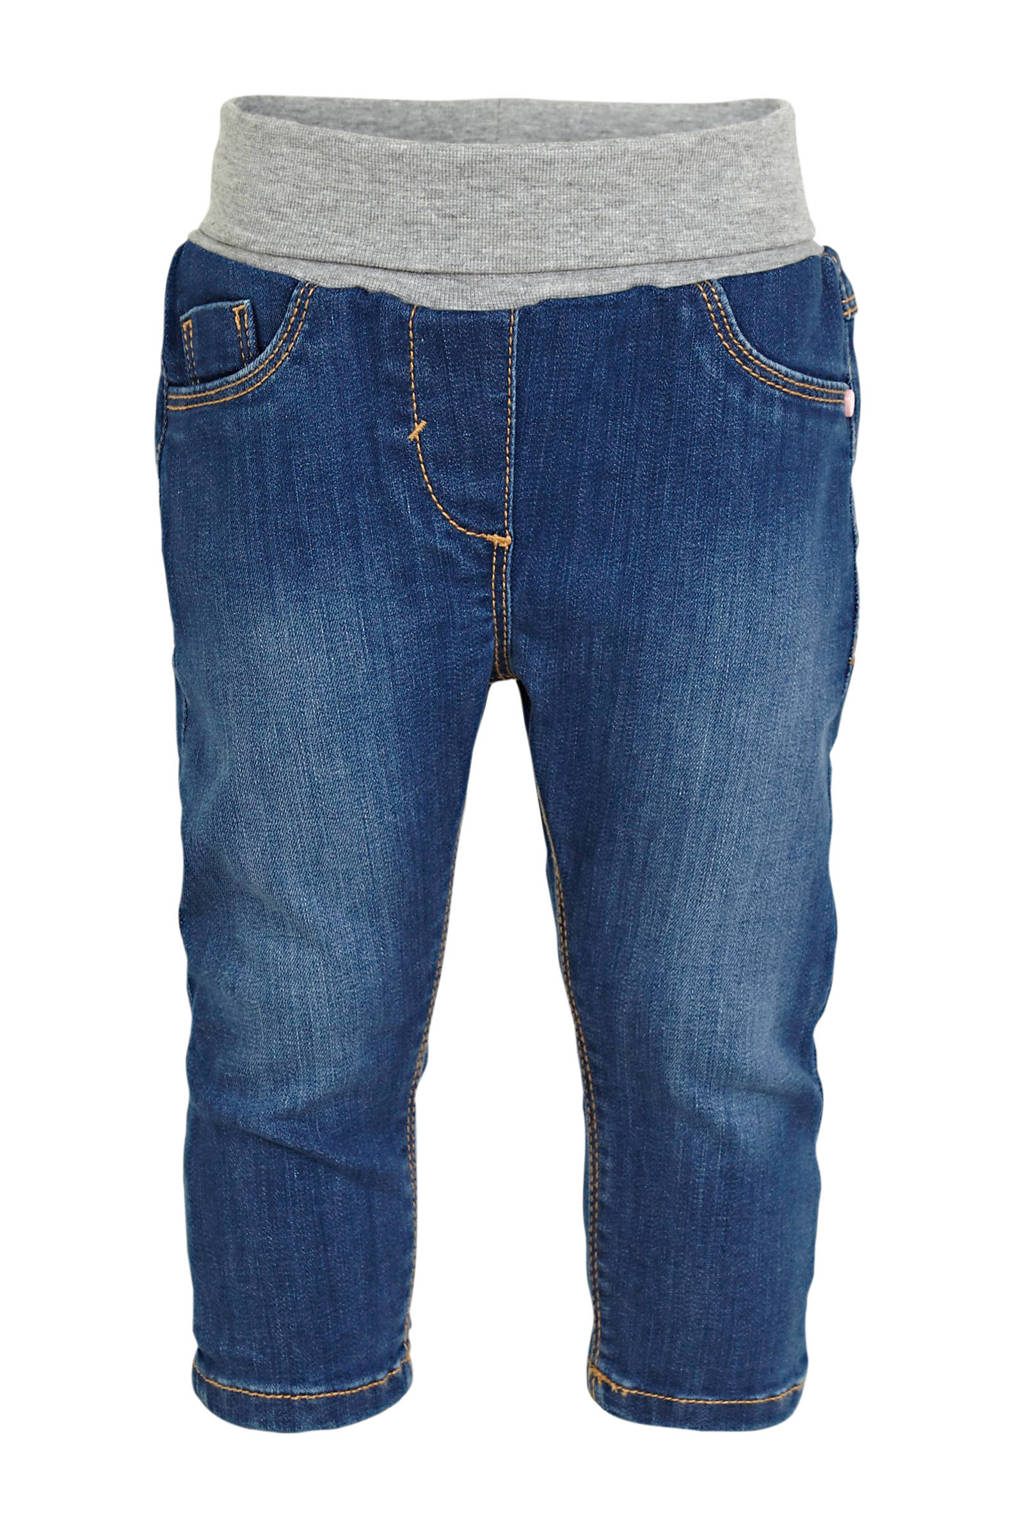 s.Oliver regular fit jeans blauw, Blauw